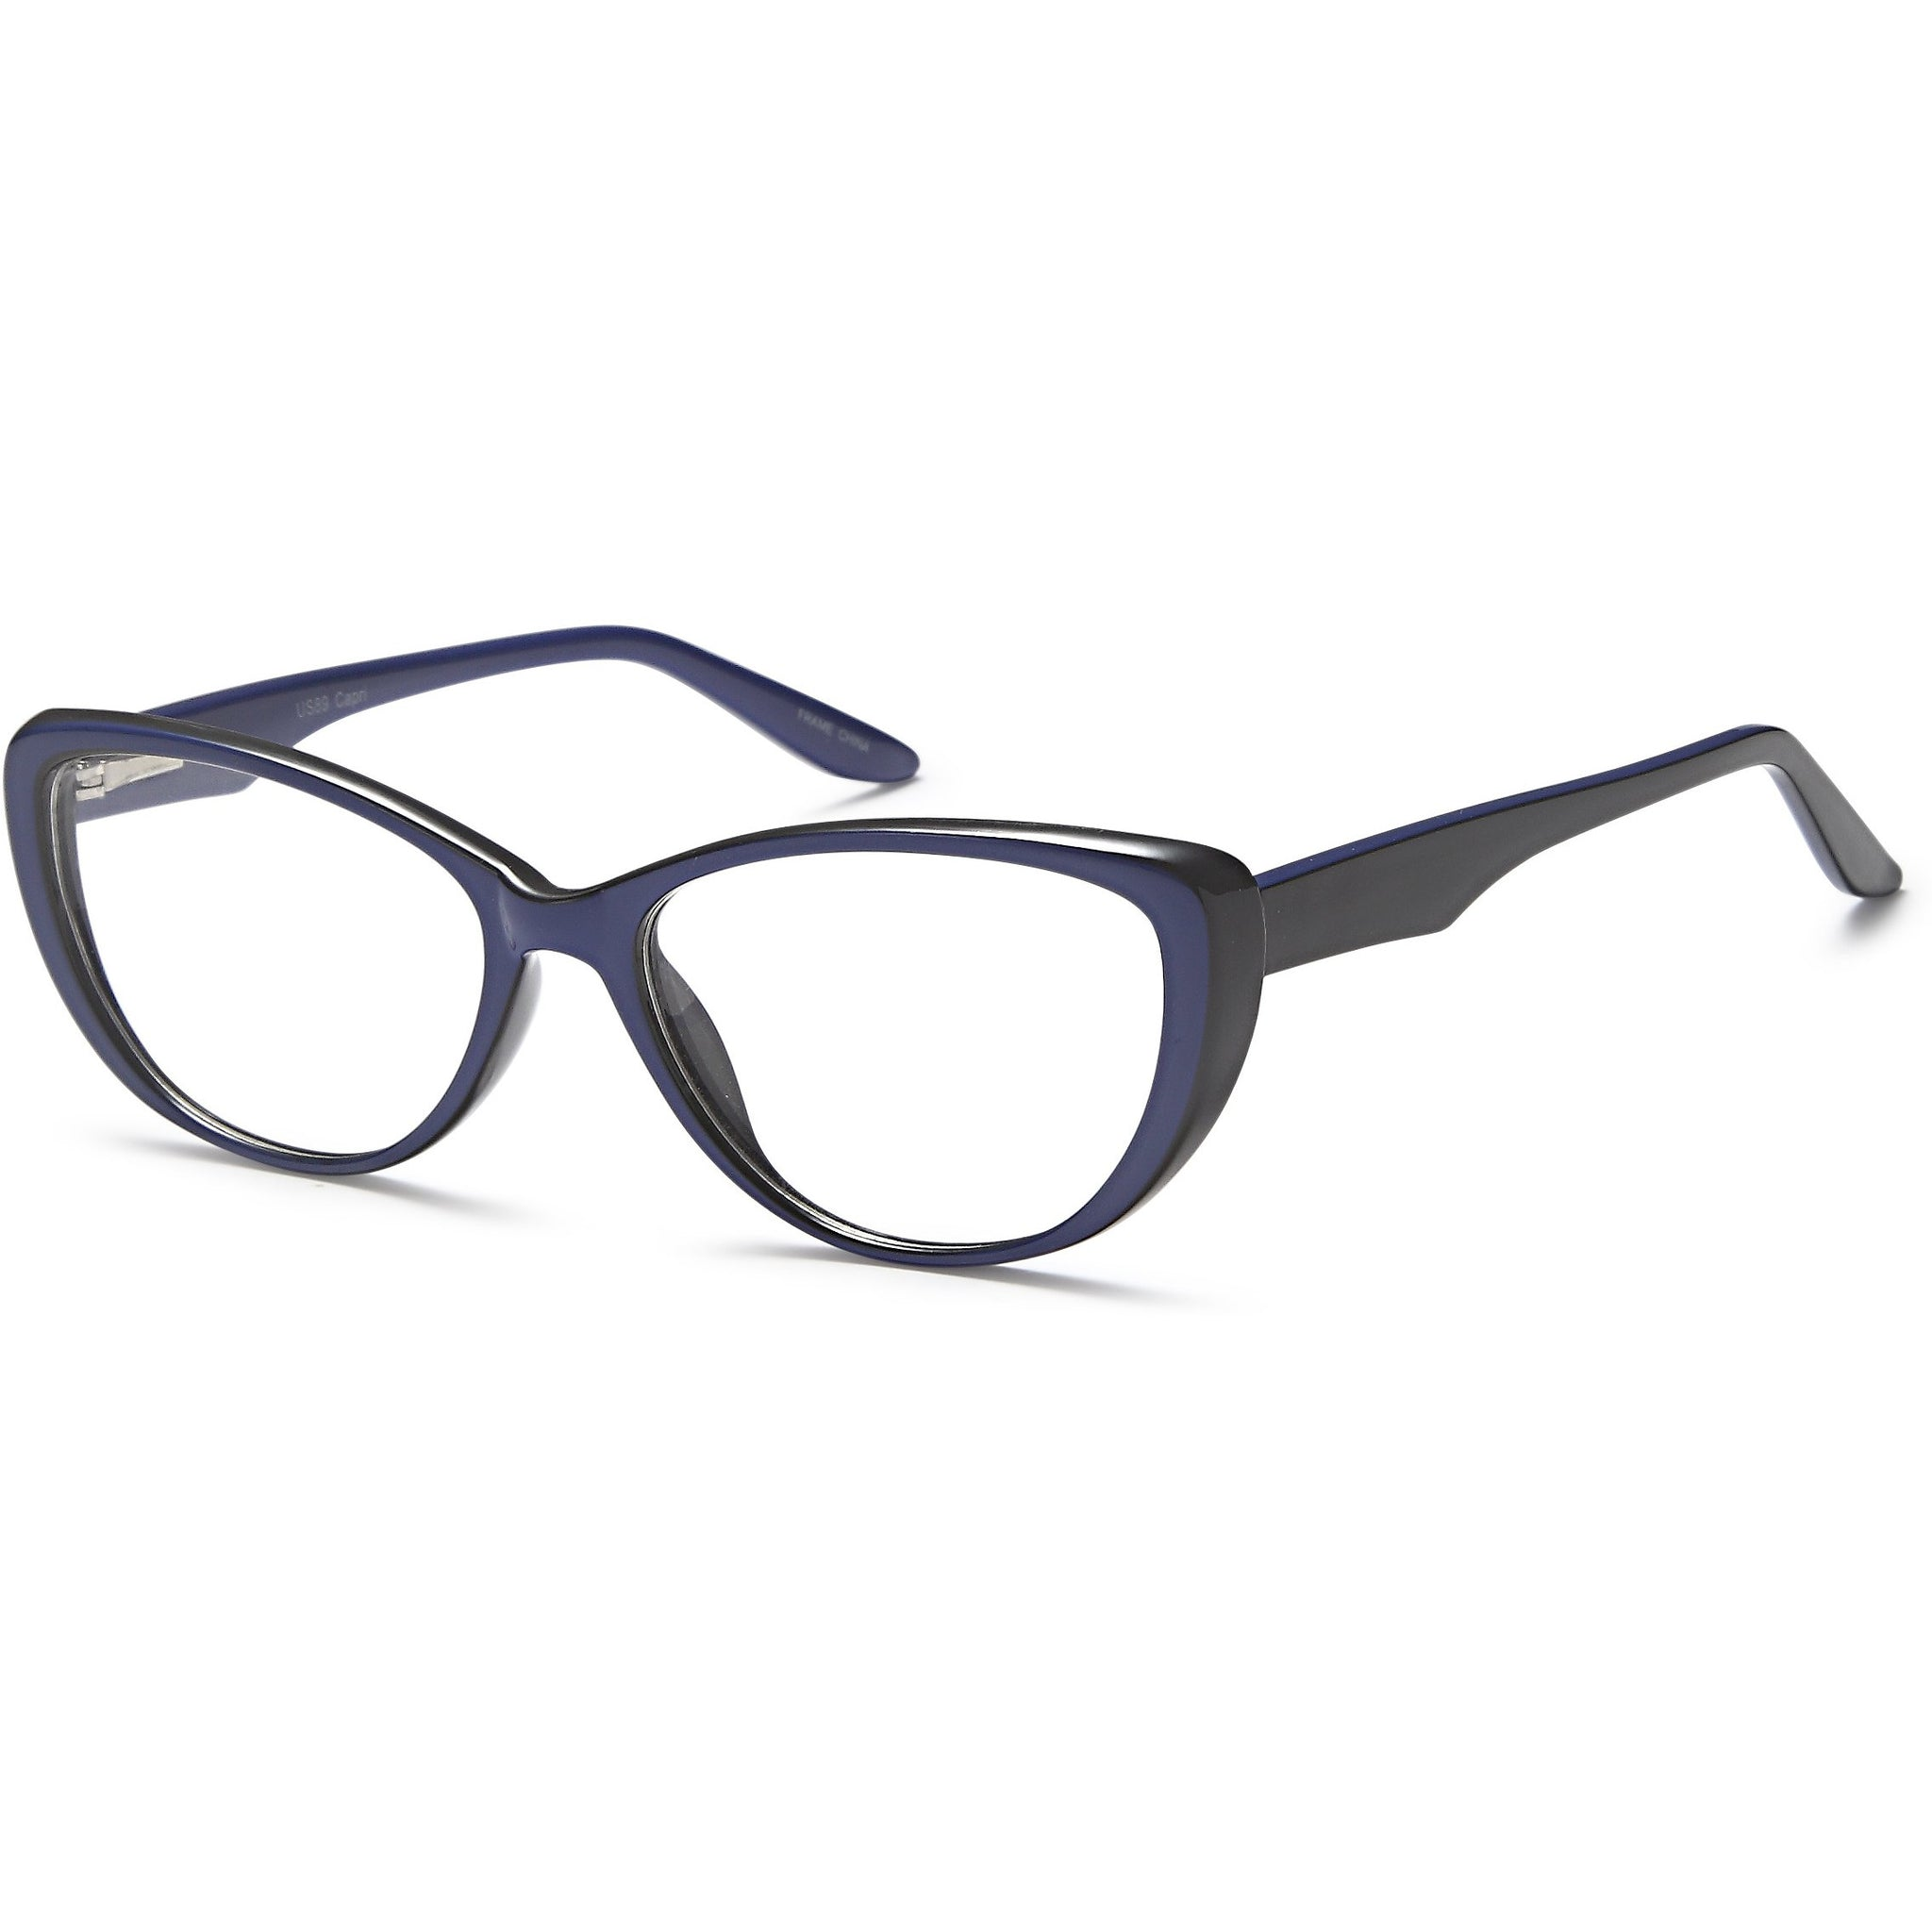 Southwark by The Square Mile Cateye Prescription Eyeglasses